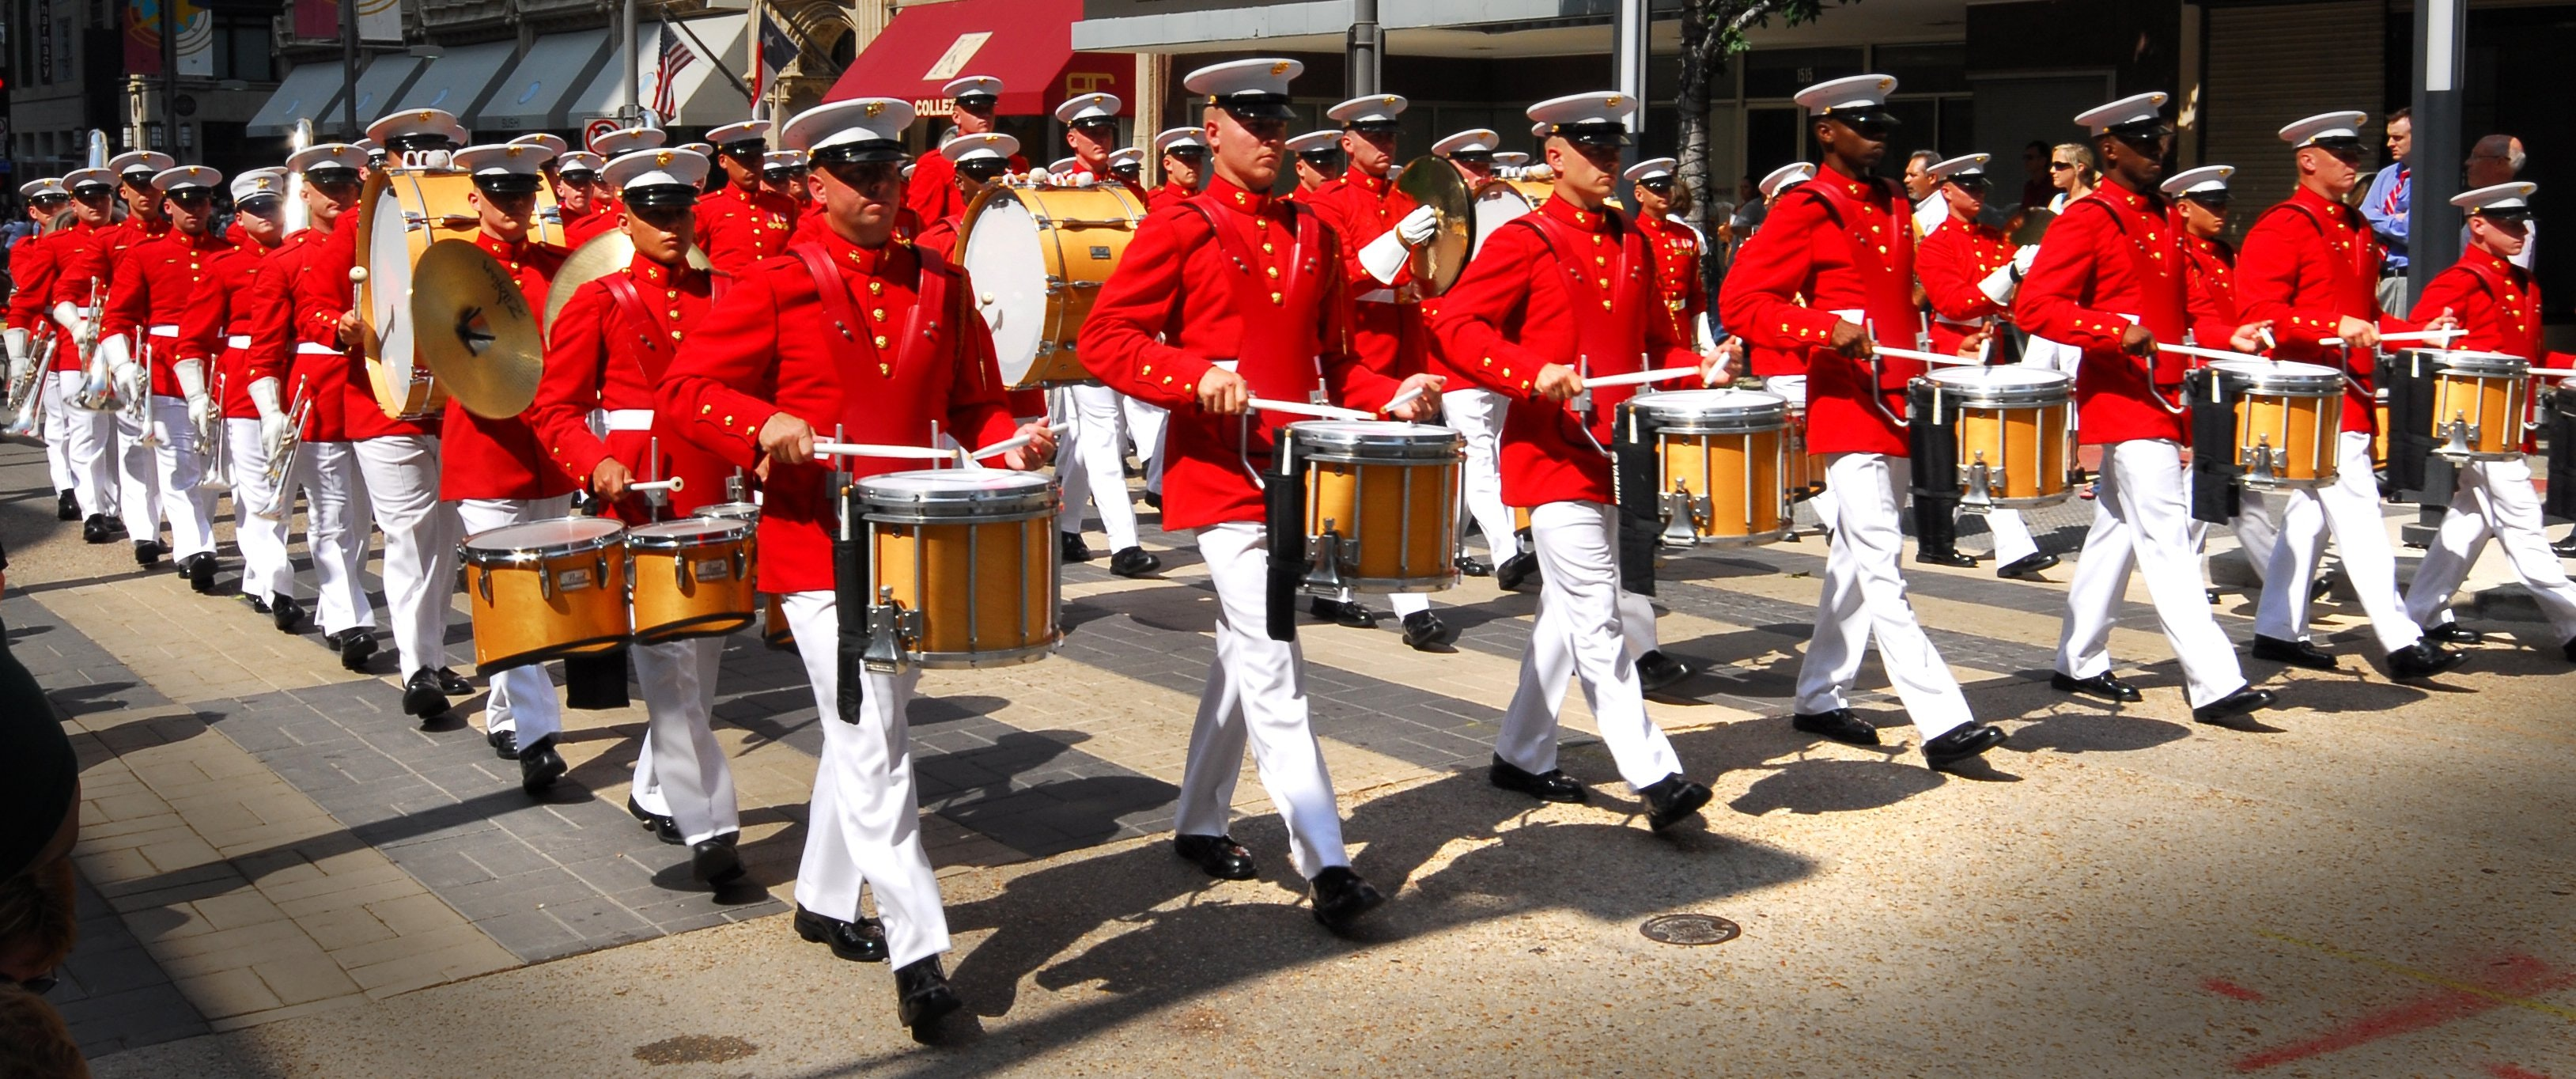 2016_07_Marching_band_drummers_in_parade_at_Texas_State_Fair_2007.jpg